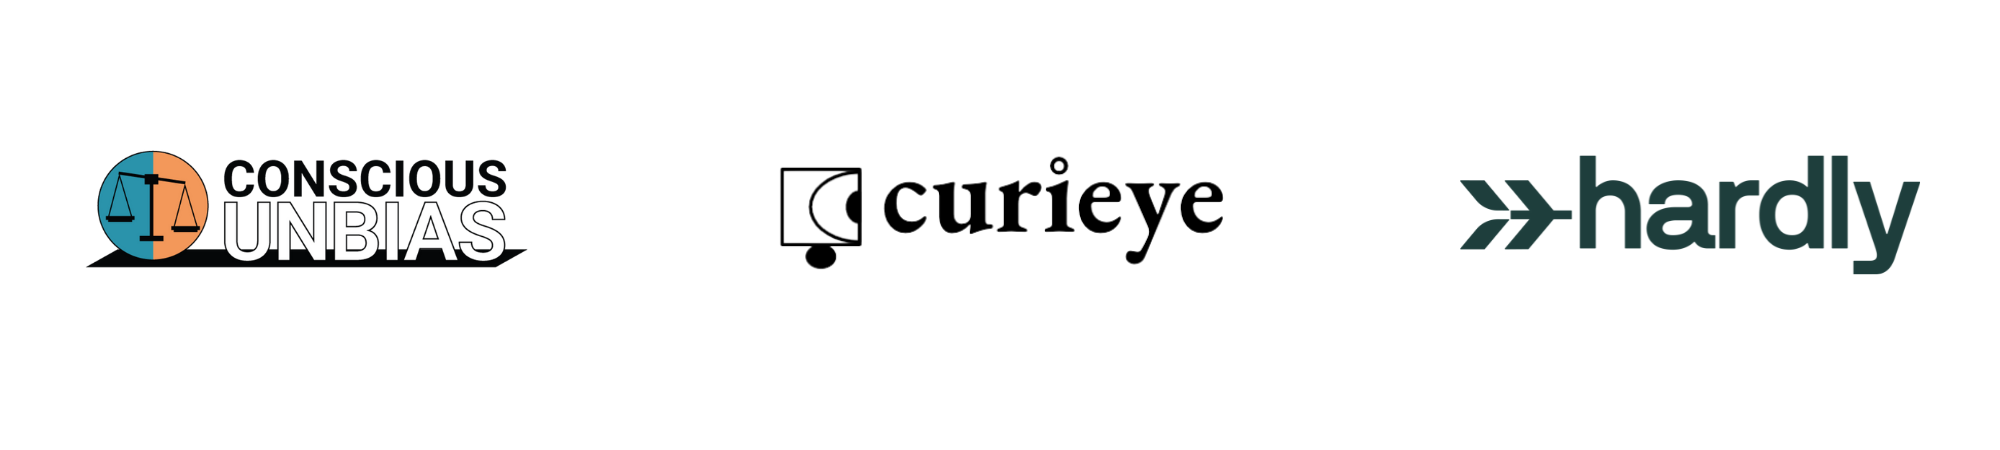 Logos for CONSCIOUS UNBIAS, CURIEYE, and HARDLY